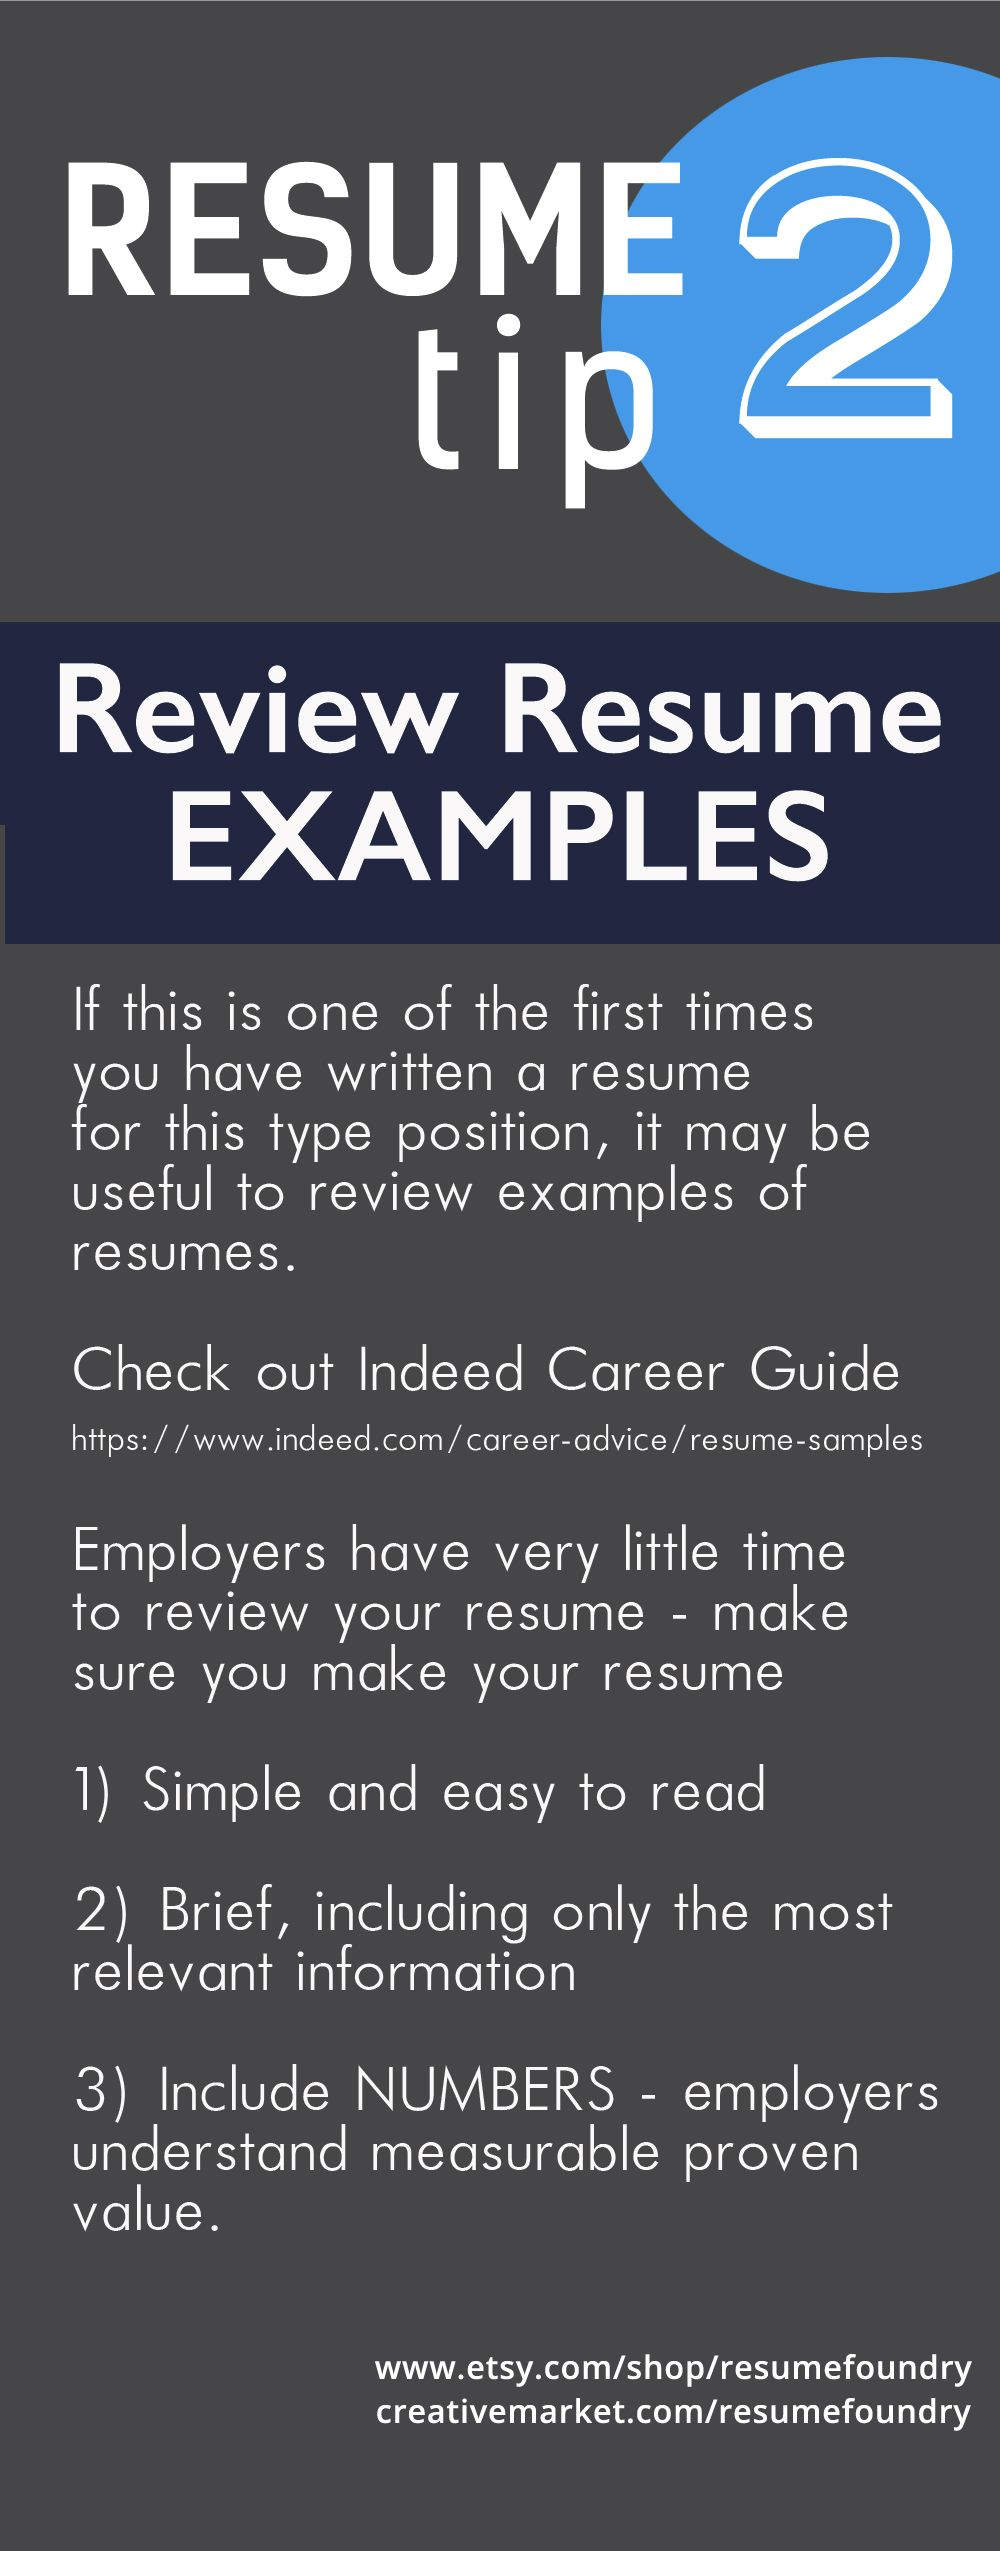 Pin by Resume Foundry on Resume Tips Resume examples